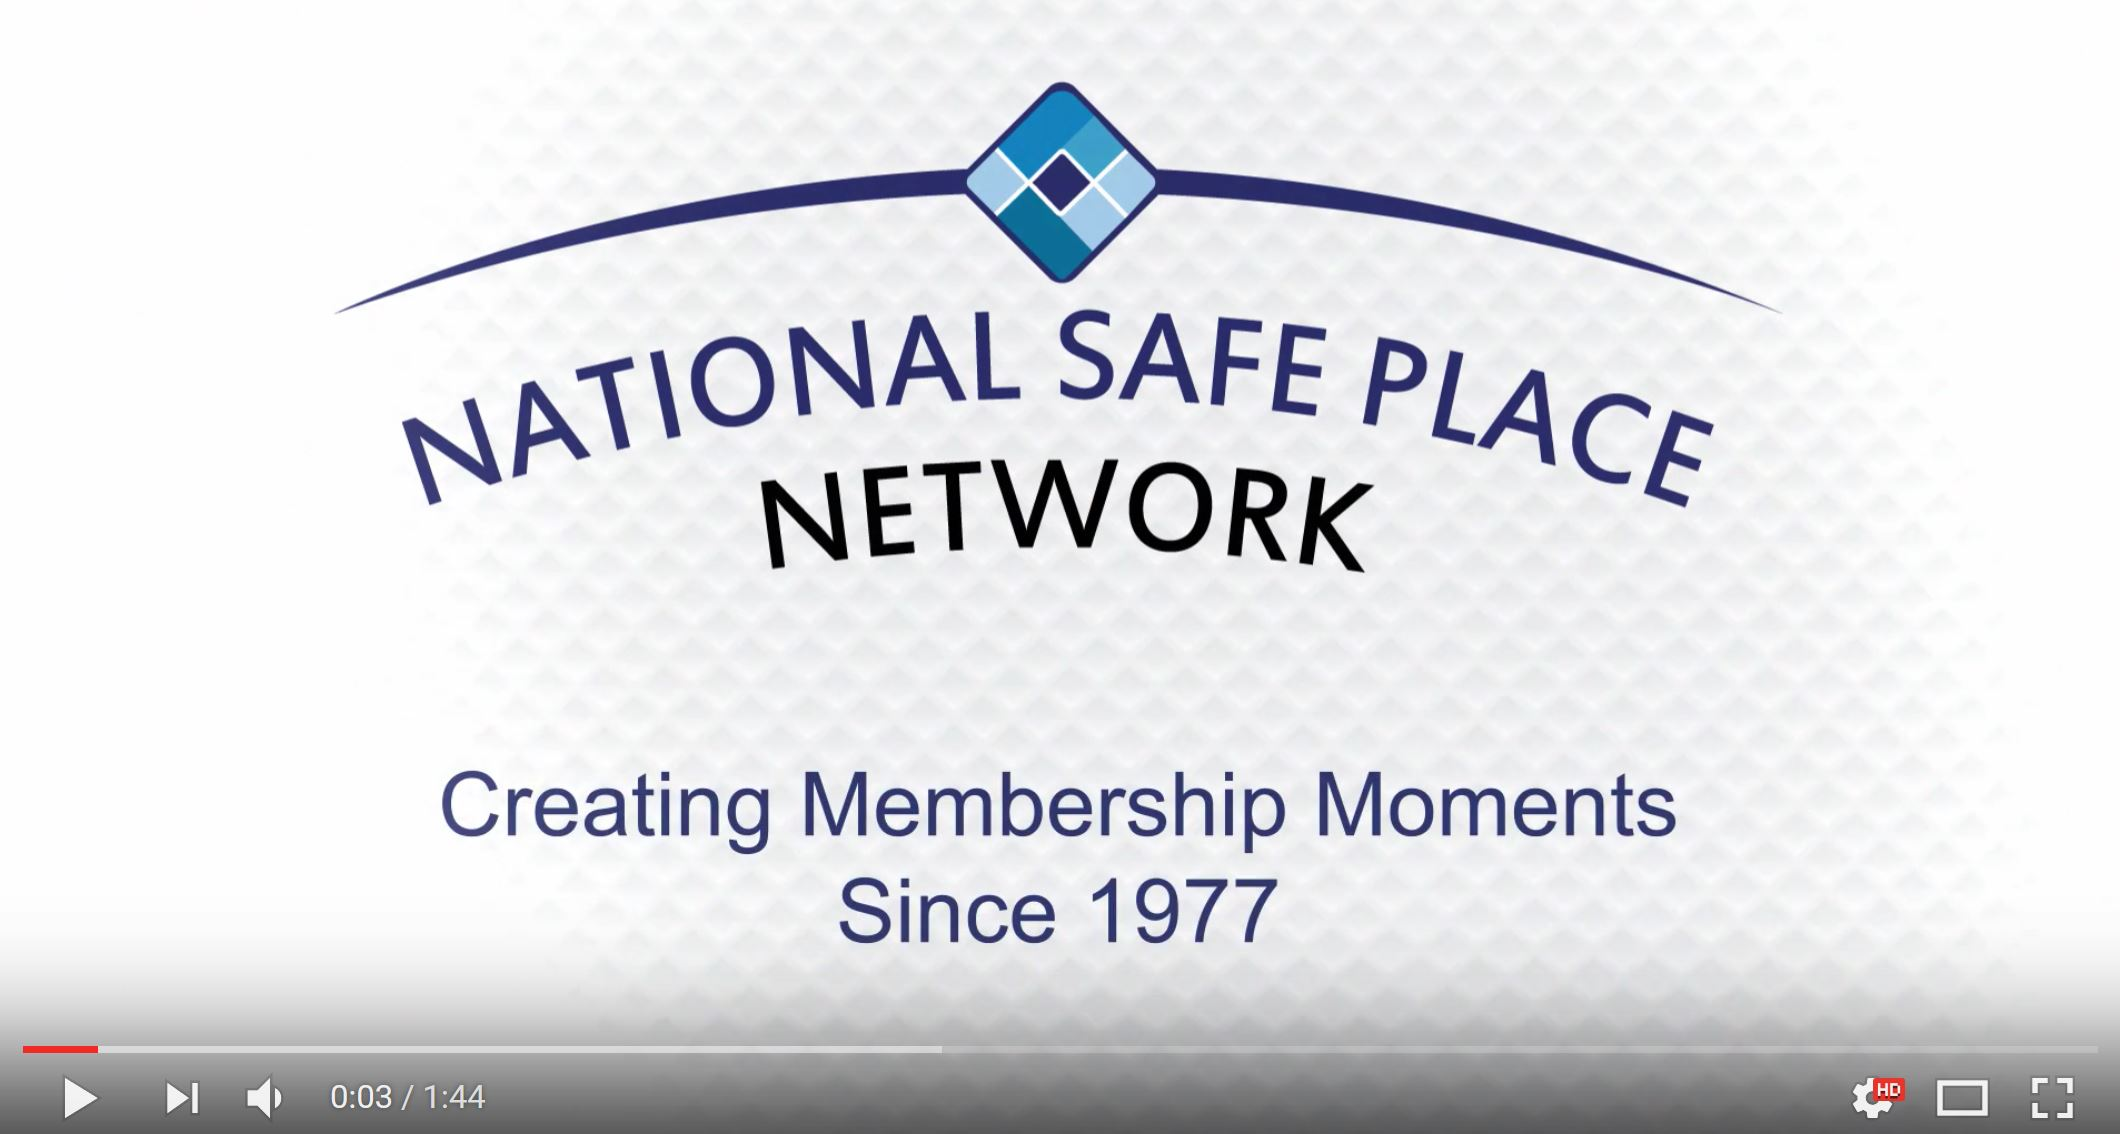 Image capture of the Membership Moments video from YouTube.